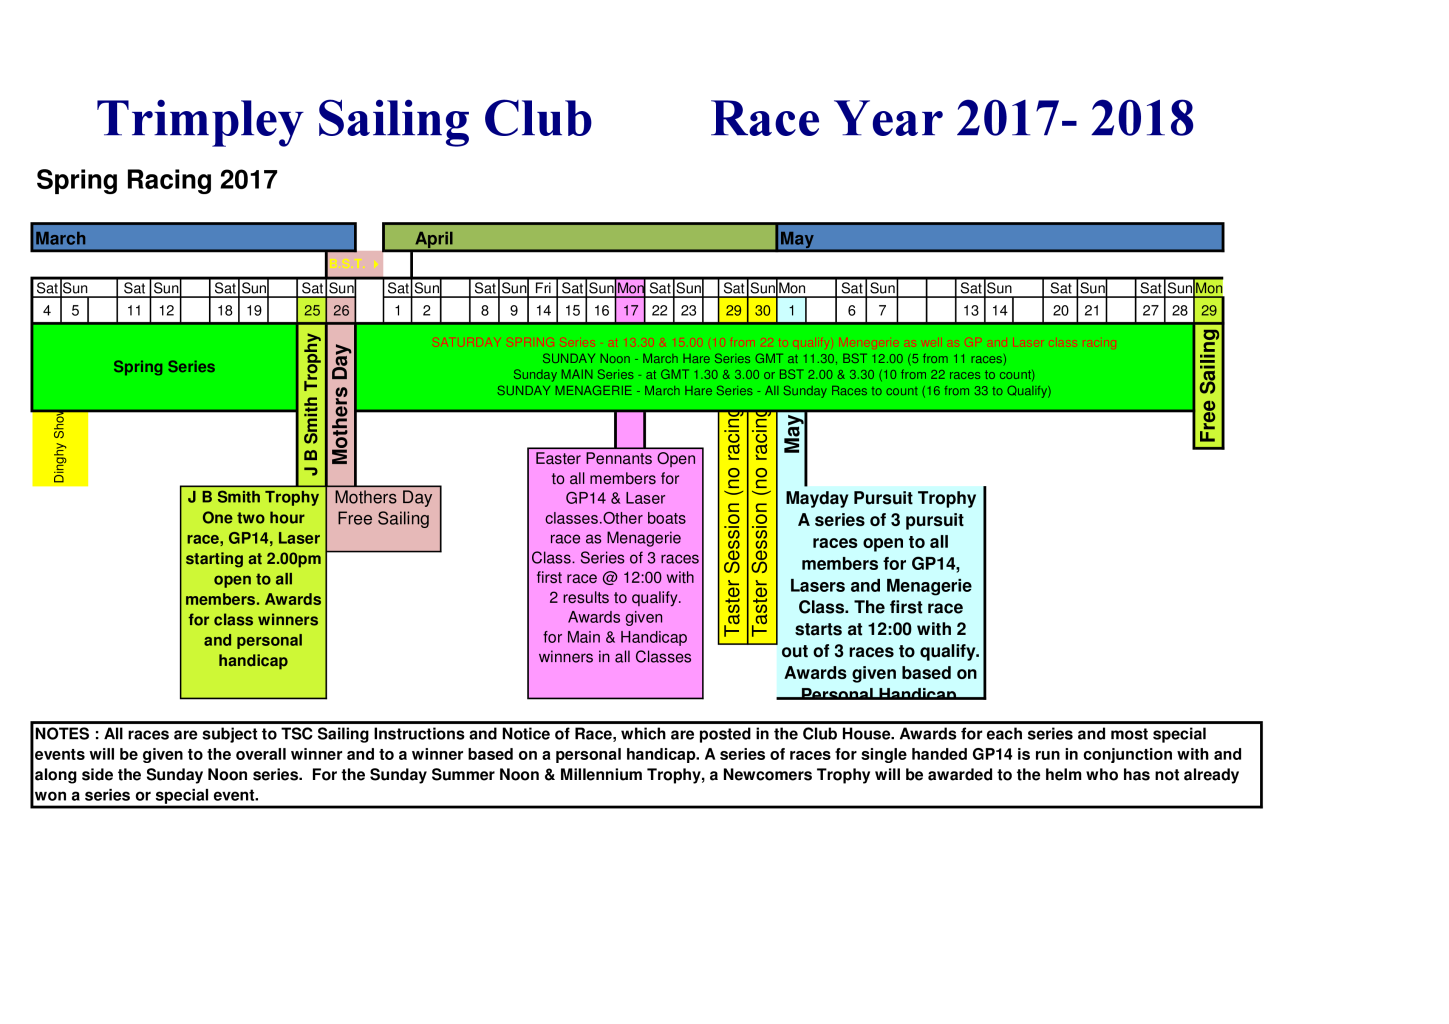 thumbnail of 2017-2018 Race card excel sheet one tab v5